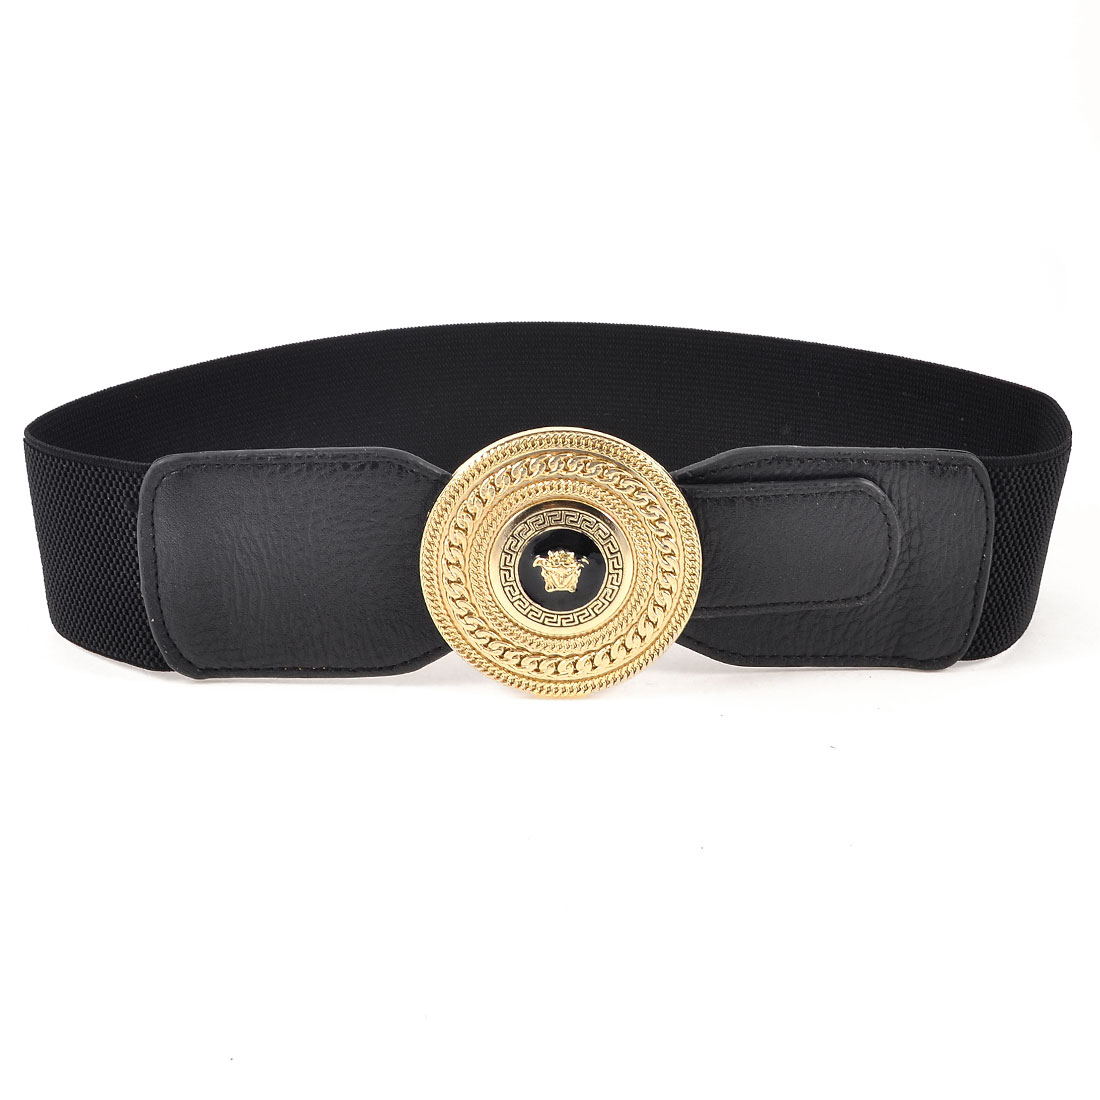 Gold Tone Metallic Single Prong Buckle Black Cinch Belt for Ladies